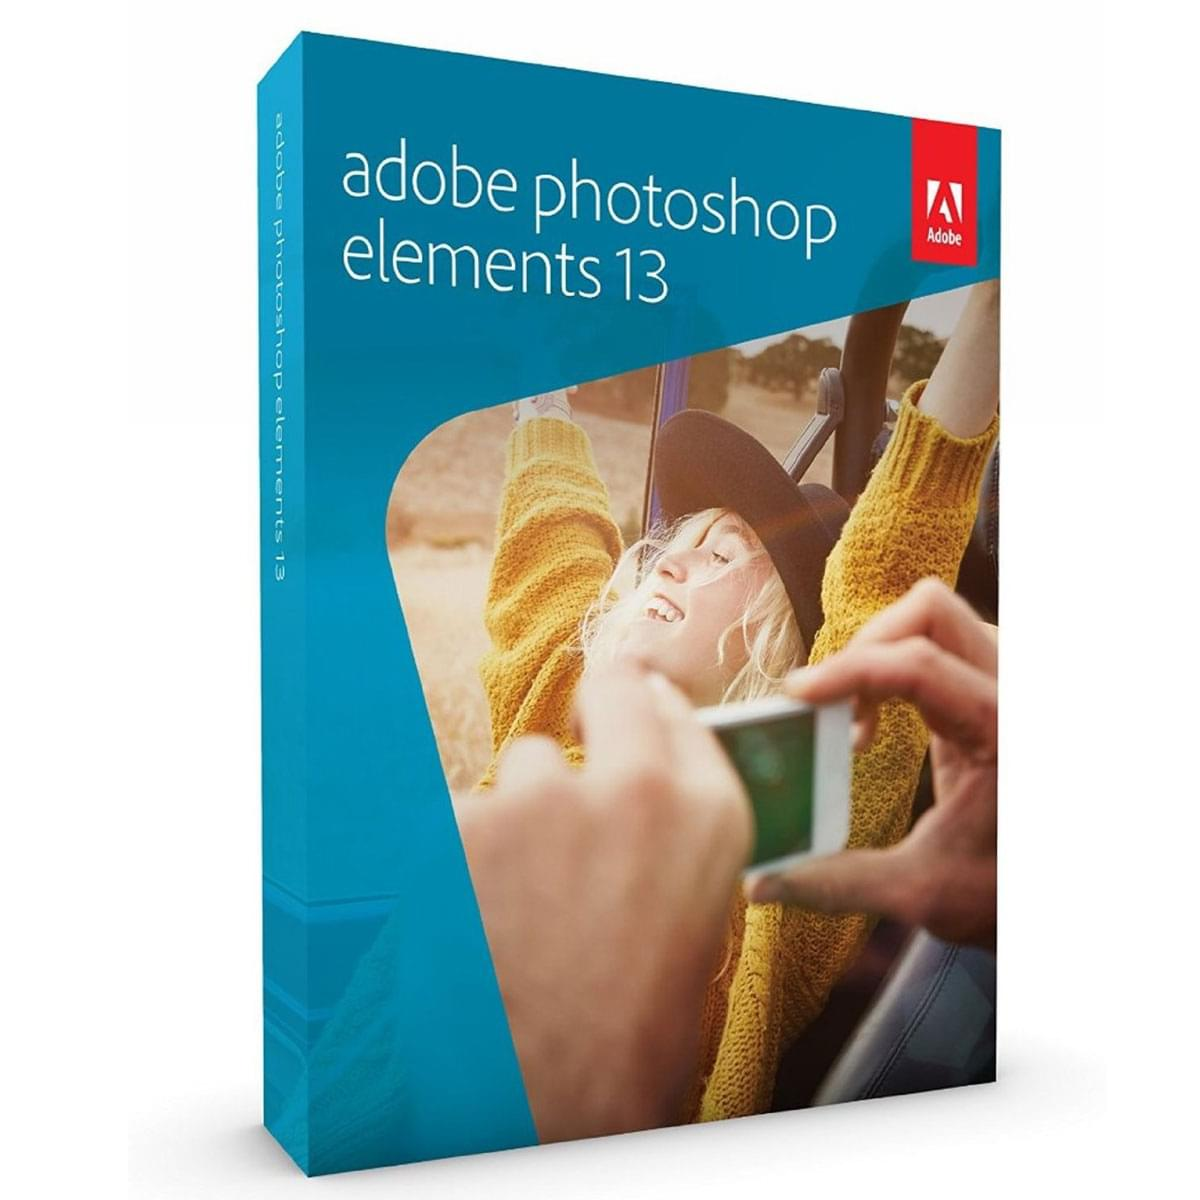 Adobe Photoshop Elements 13 (65234454) - Achat / Vente Logiciel Application sur Cybertek.fr - 0